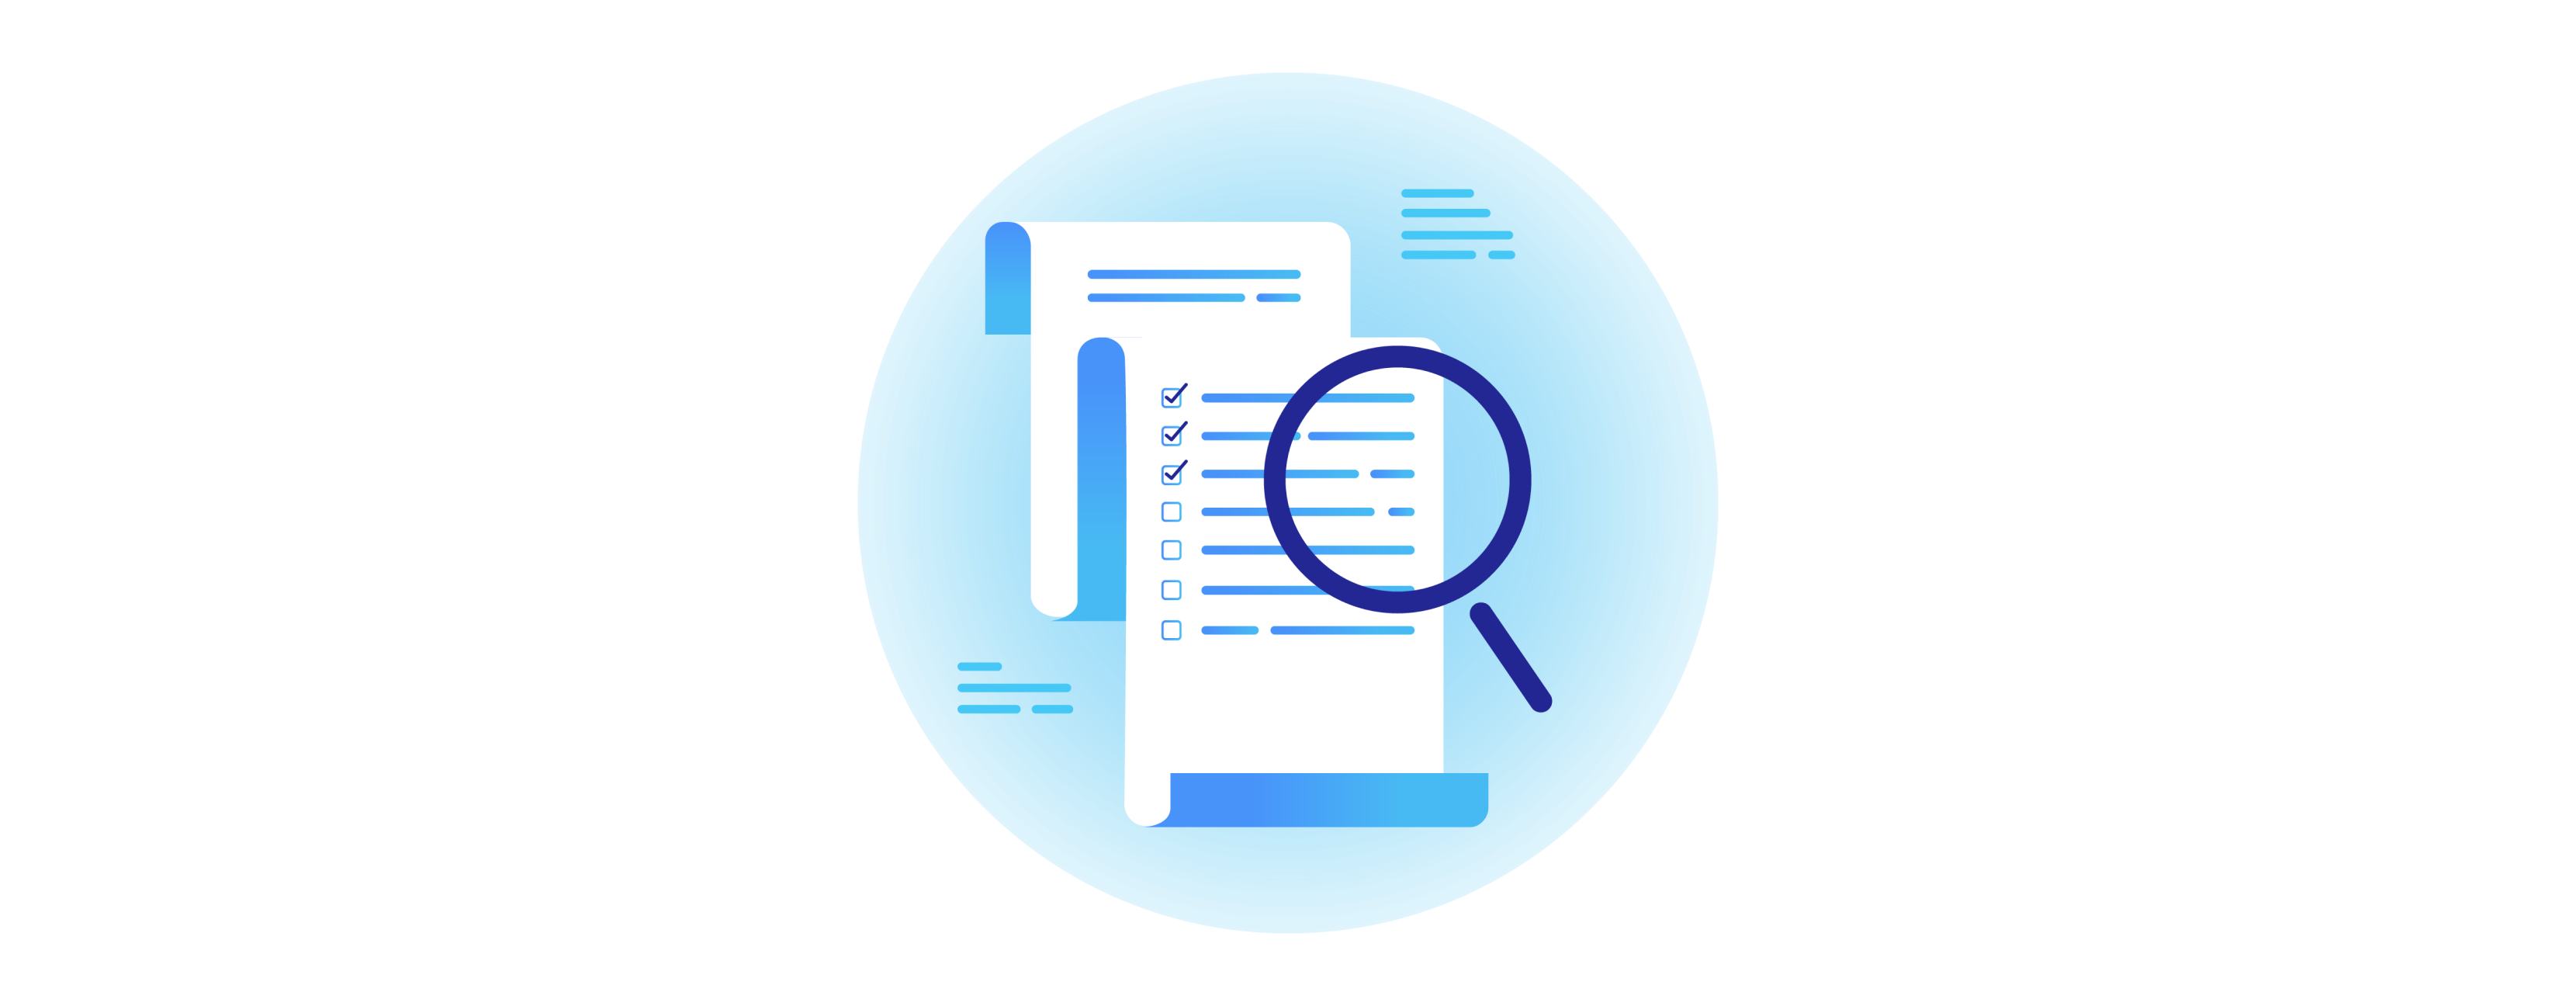 Inventory Audit How Auditors Can Optimize Audits In 2021 Auditboard